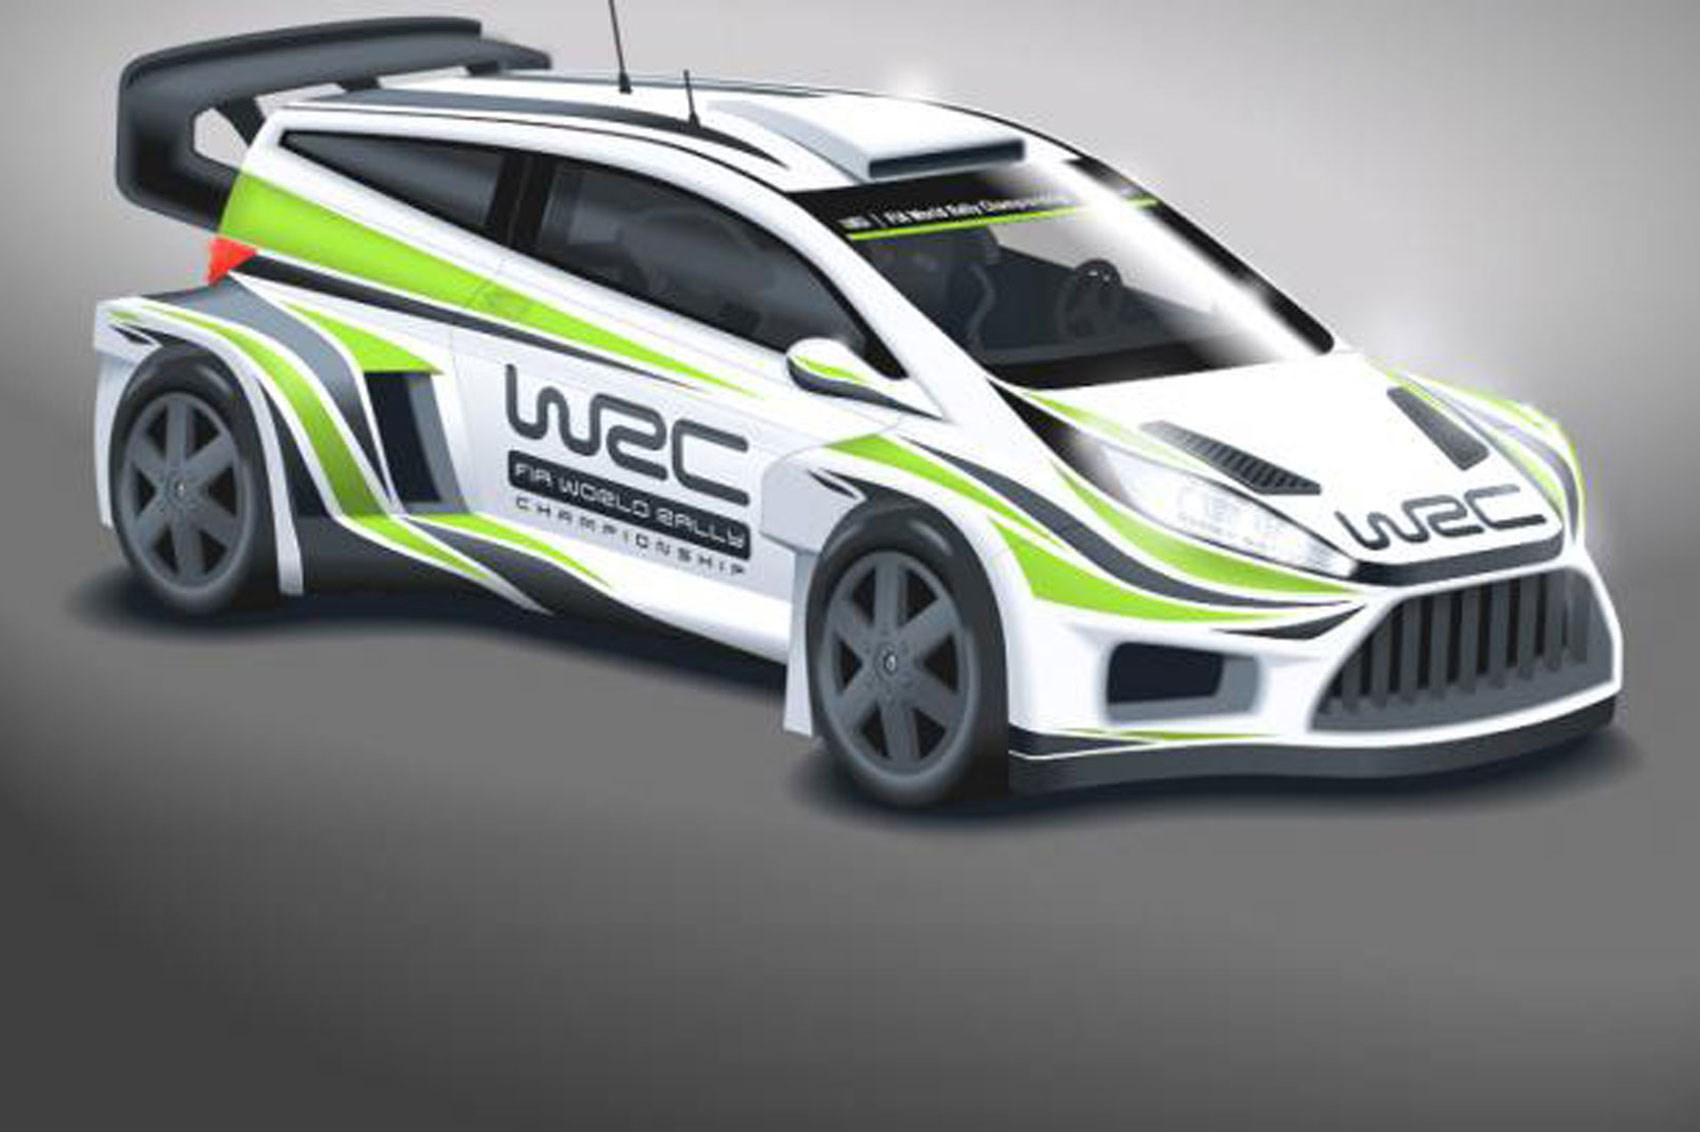 Ultrablogus  Scenic Wild New Look For Wrc Cars In  By Car Magazine With Magnificent Wrc Cars Will Get Wider Bodies Bigger Wings And More Power For  With Comely Led Interior Strip Lights Also Replace Car Interior In Addition How To Fix Interior Roof Of Car And Audi R White Interior As Well As  Impala Interior Additionally  Ford Ranger Interior From Carmagazinecouk With Ultrablogus  Magnificent Wild New Look For Wrc Cars In  By Car Magazine With Comely Wrc Cars Will Get Wider Bodies Bigger Wings And More Power For  And Scenic Led Interior Strip Lights Also Replace Car Interior In Addition How To Fix Interior Roof Of Car From Carmagazinecouk